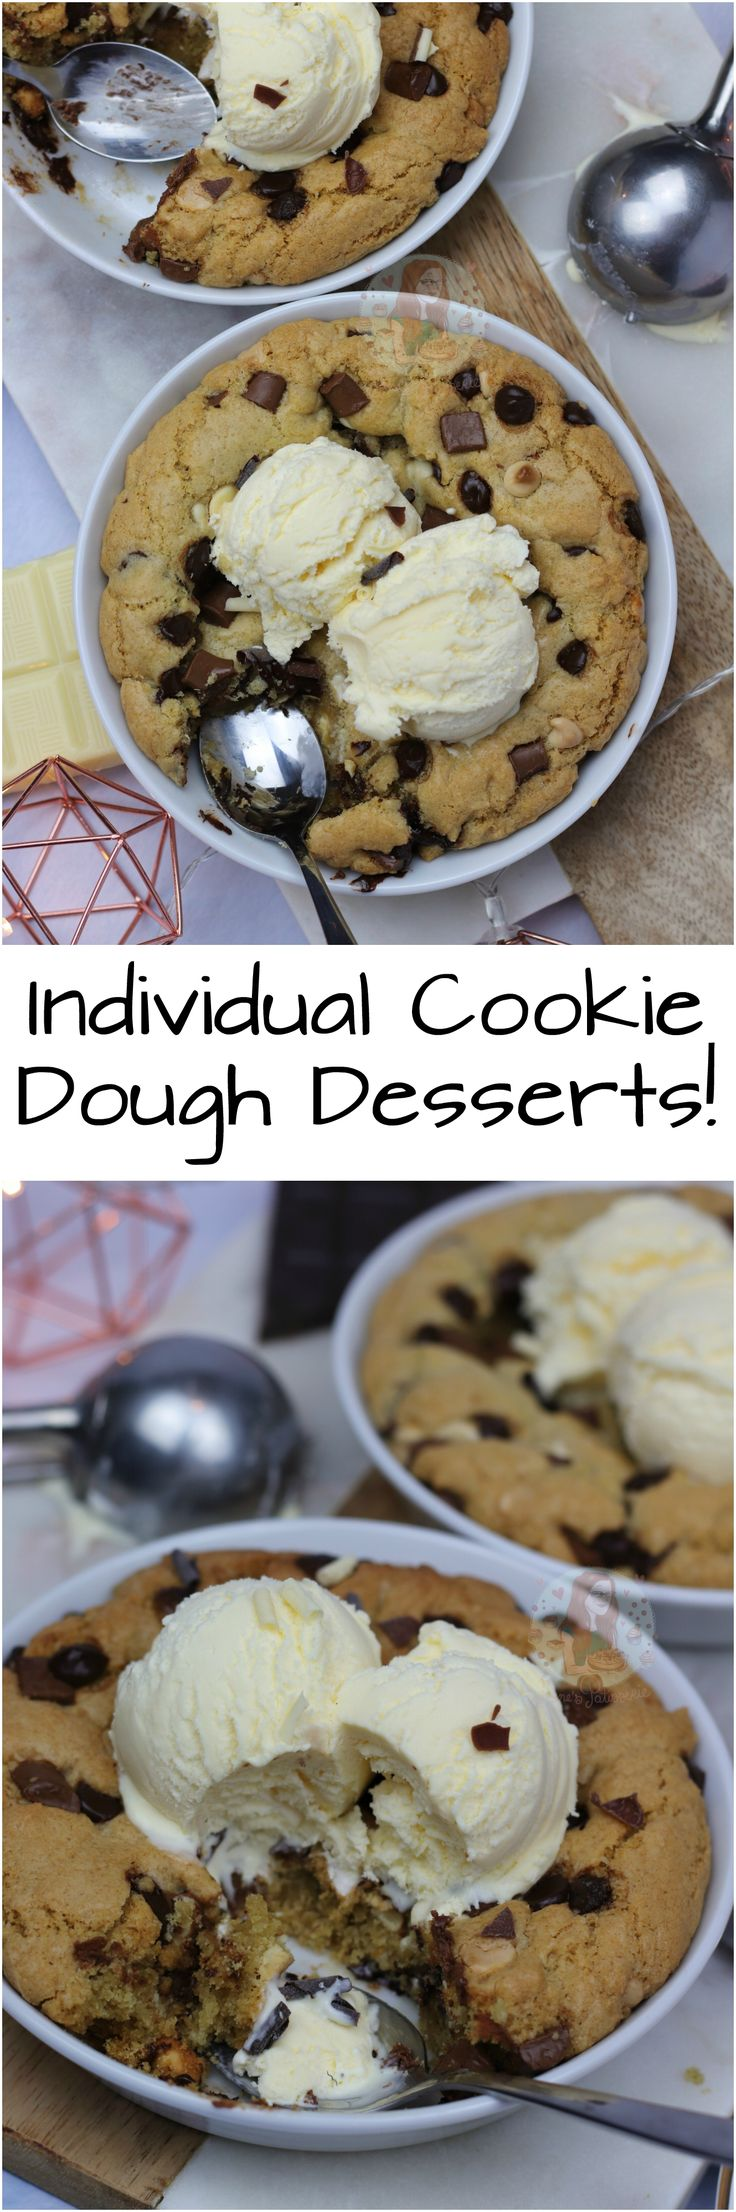 Individual Cookie Dough Desserts!! A Delicious Chocolatey Recipe for Two Individual Cookie Dough Desserts – just like the Pizza Hut one!